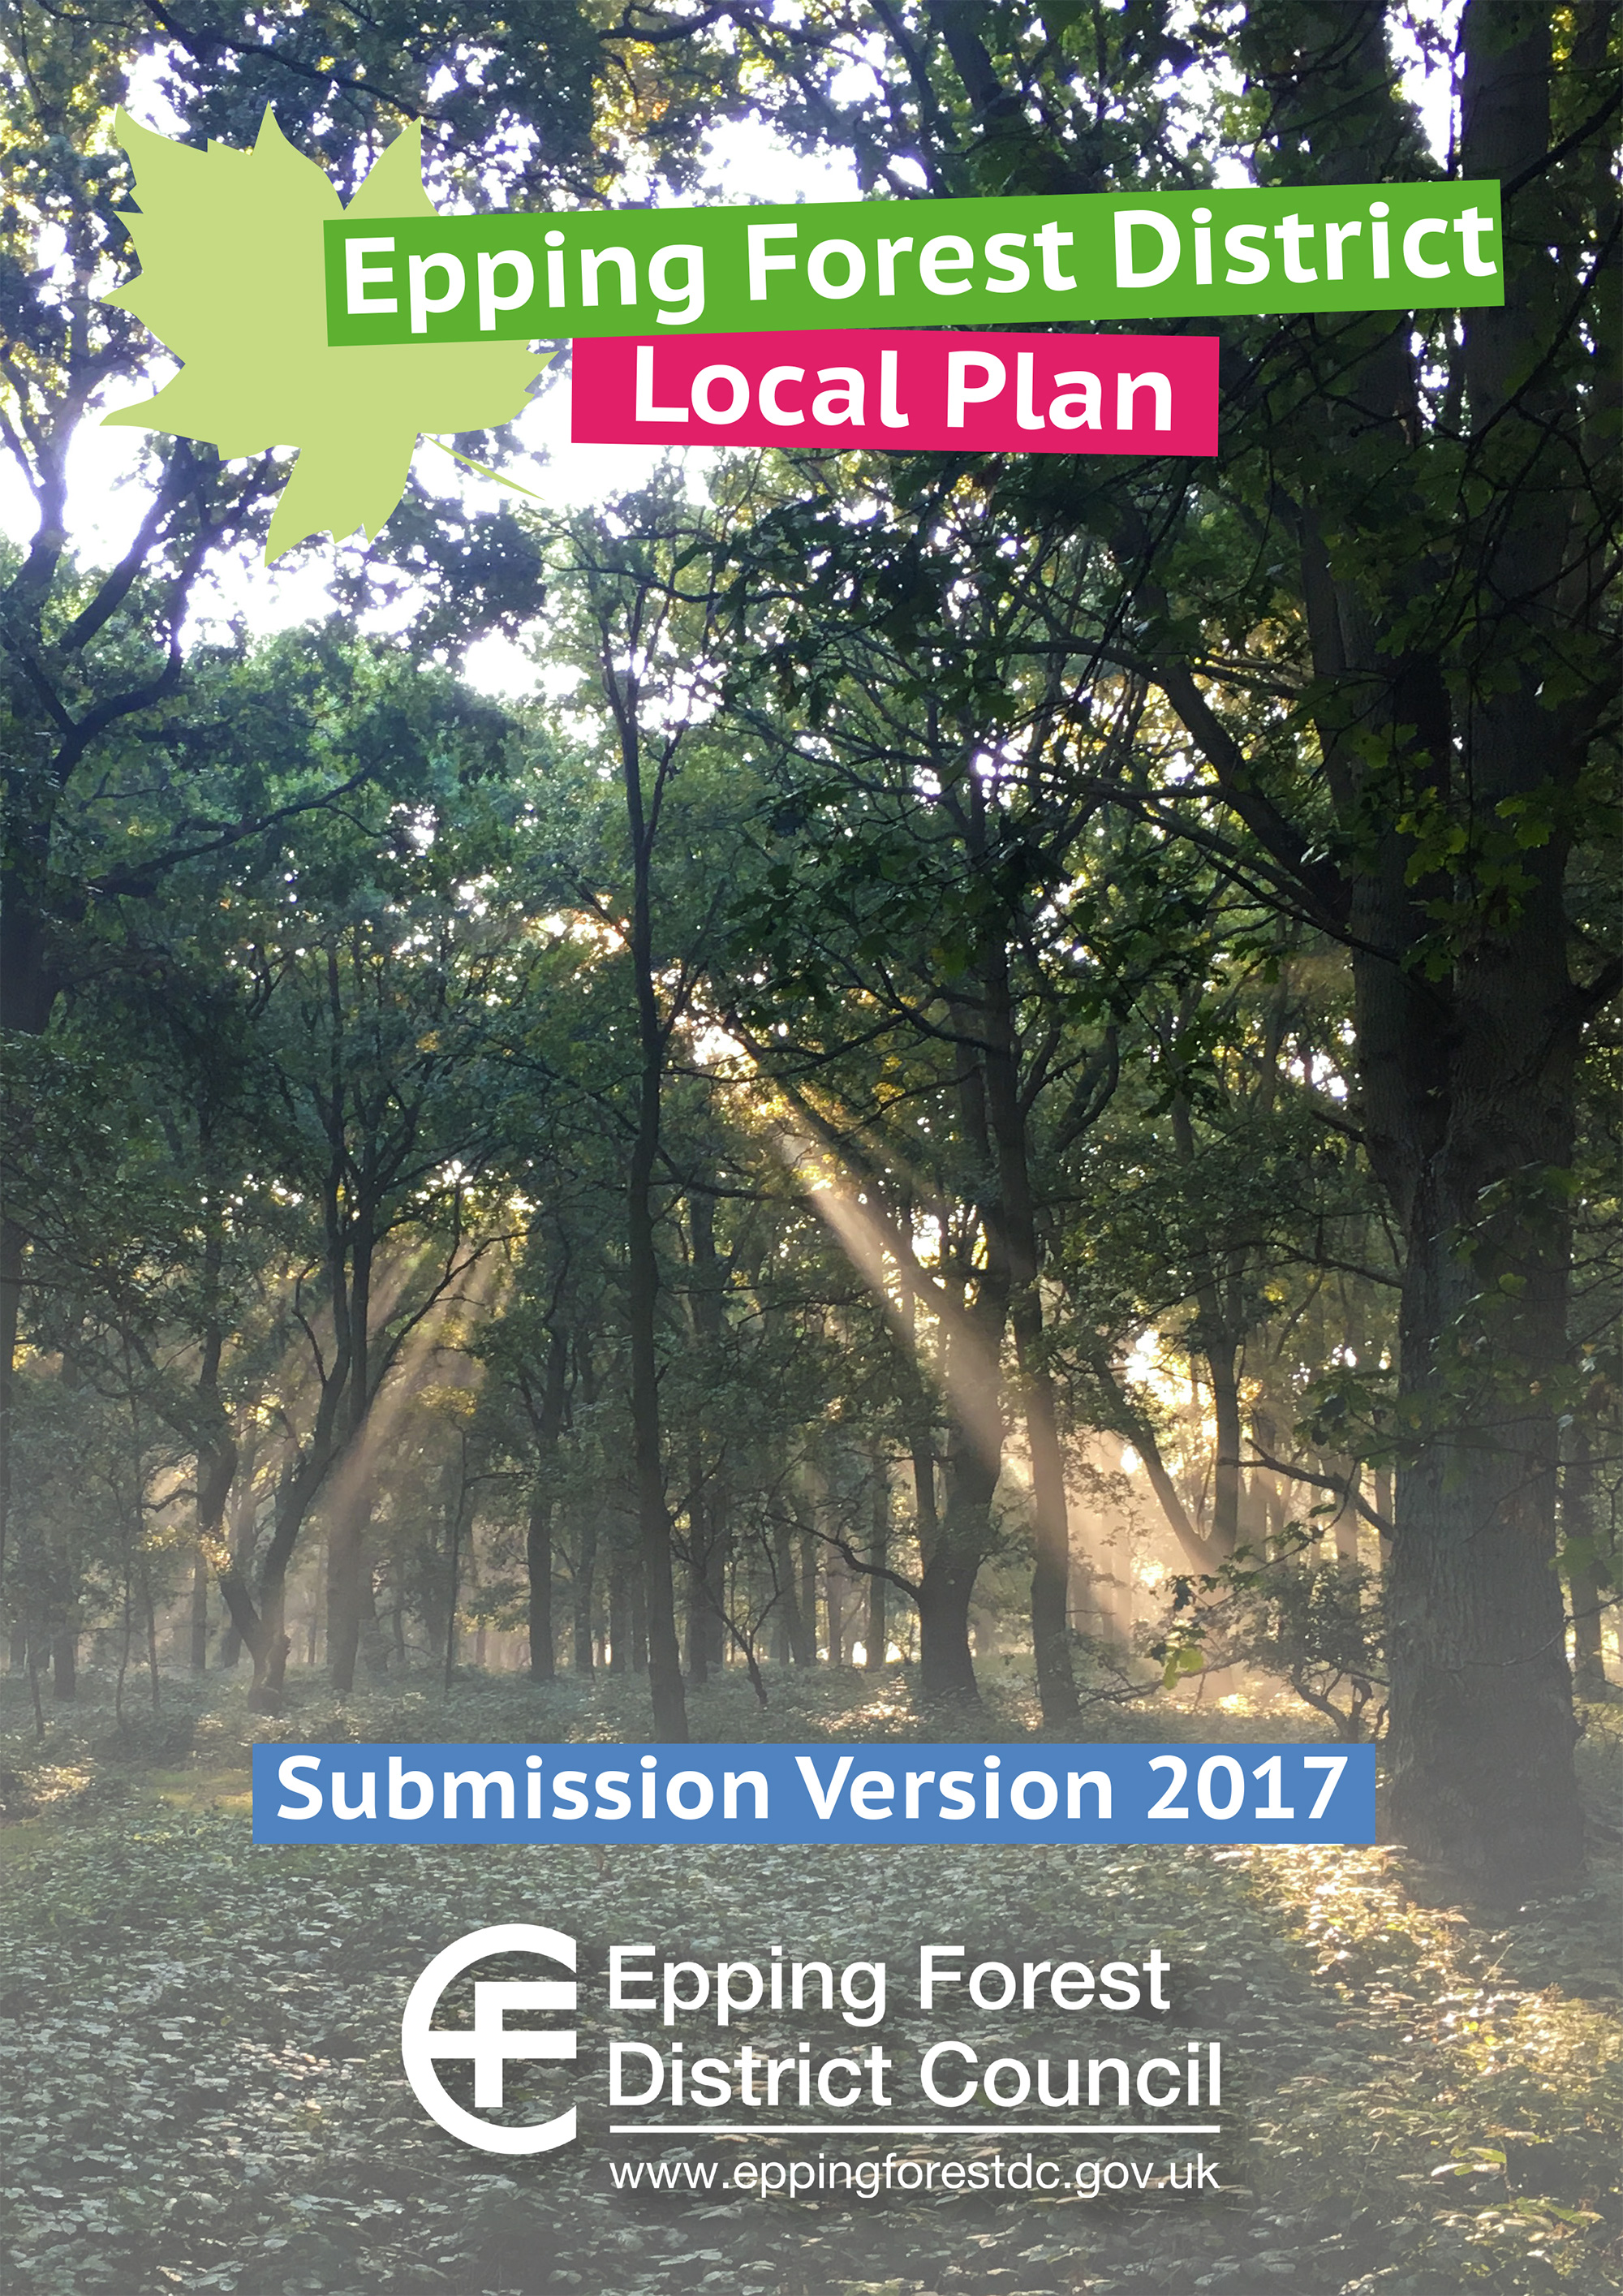 Epping-Forest-District-Local-Plan-Submission-Version 2017